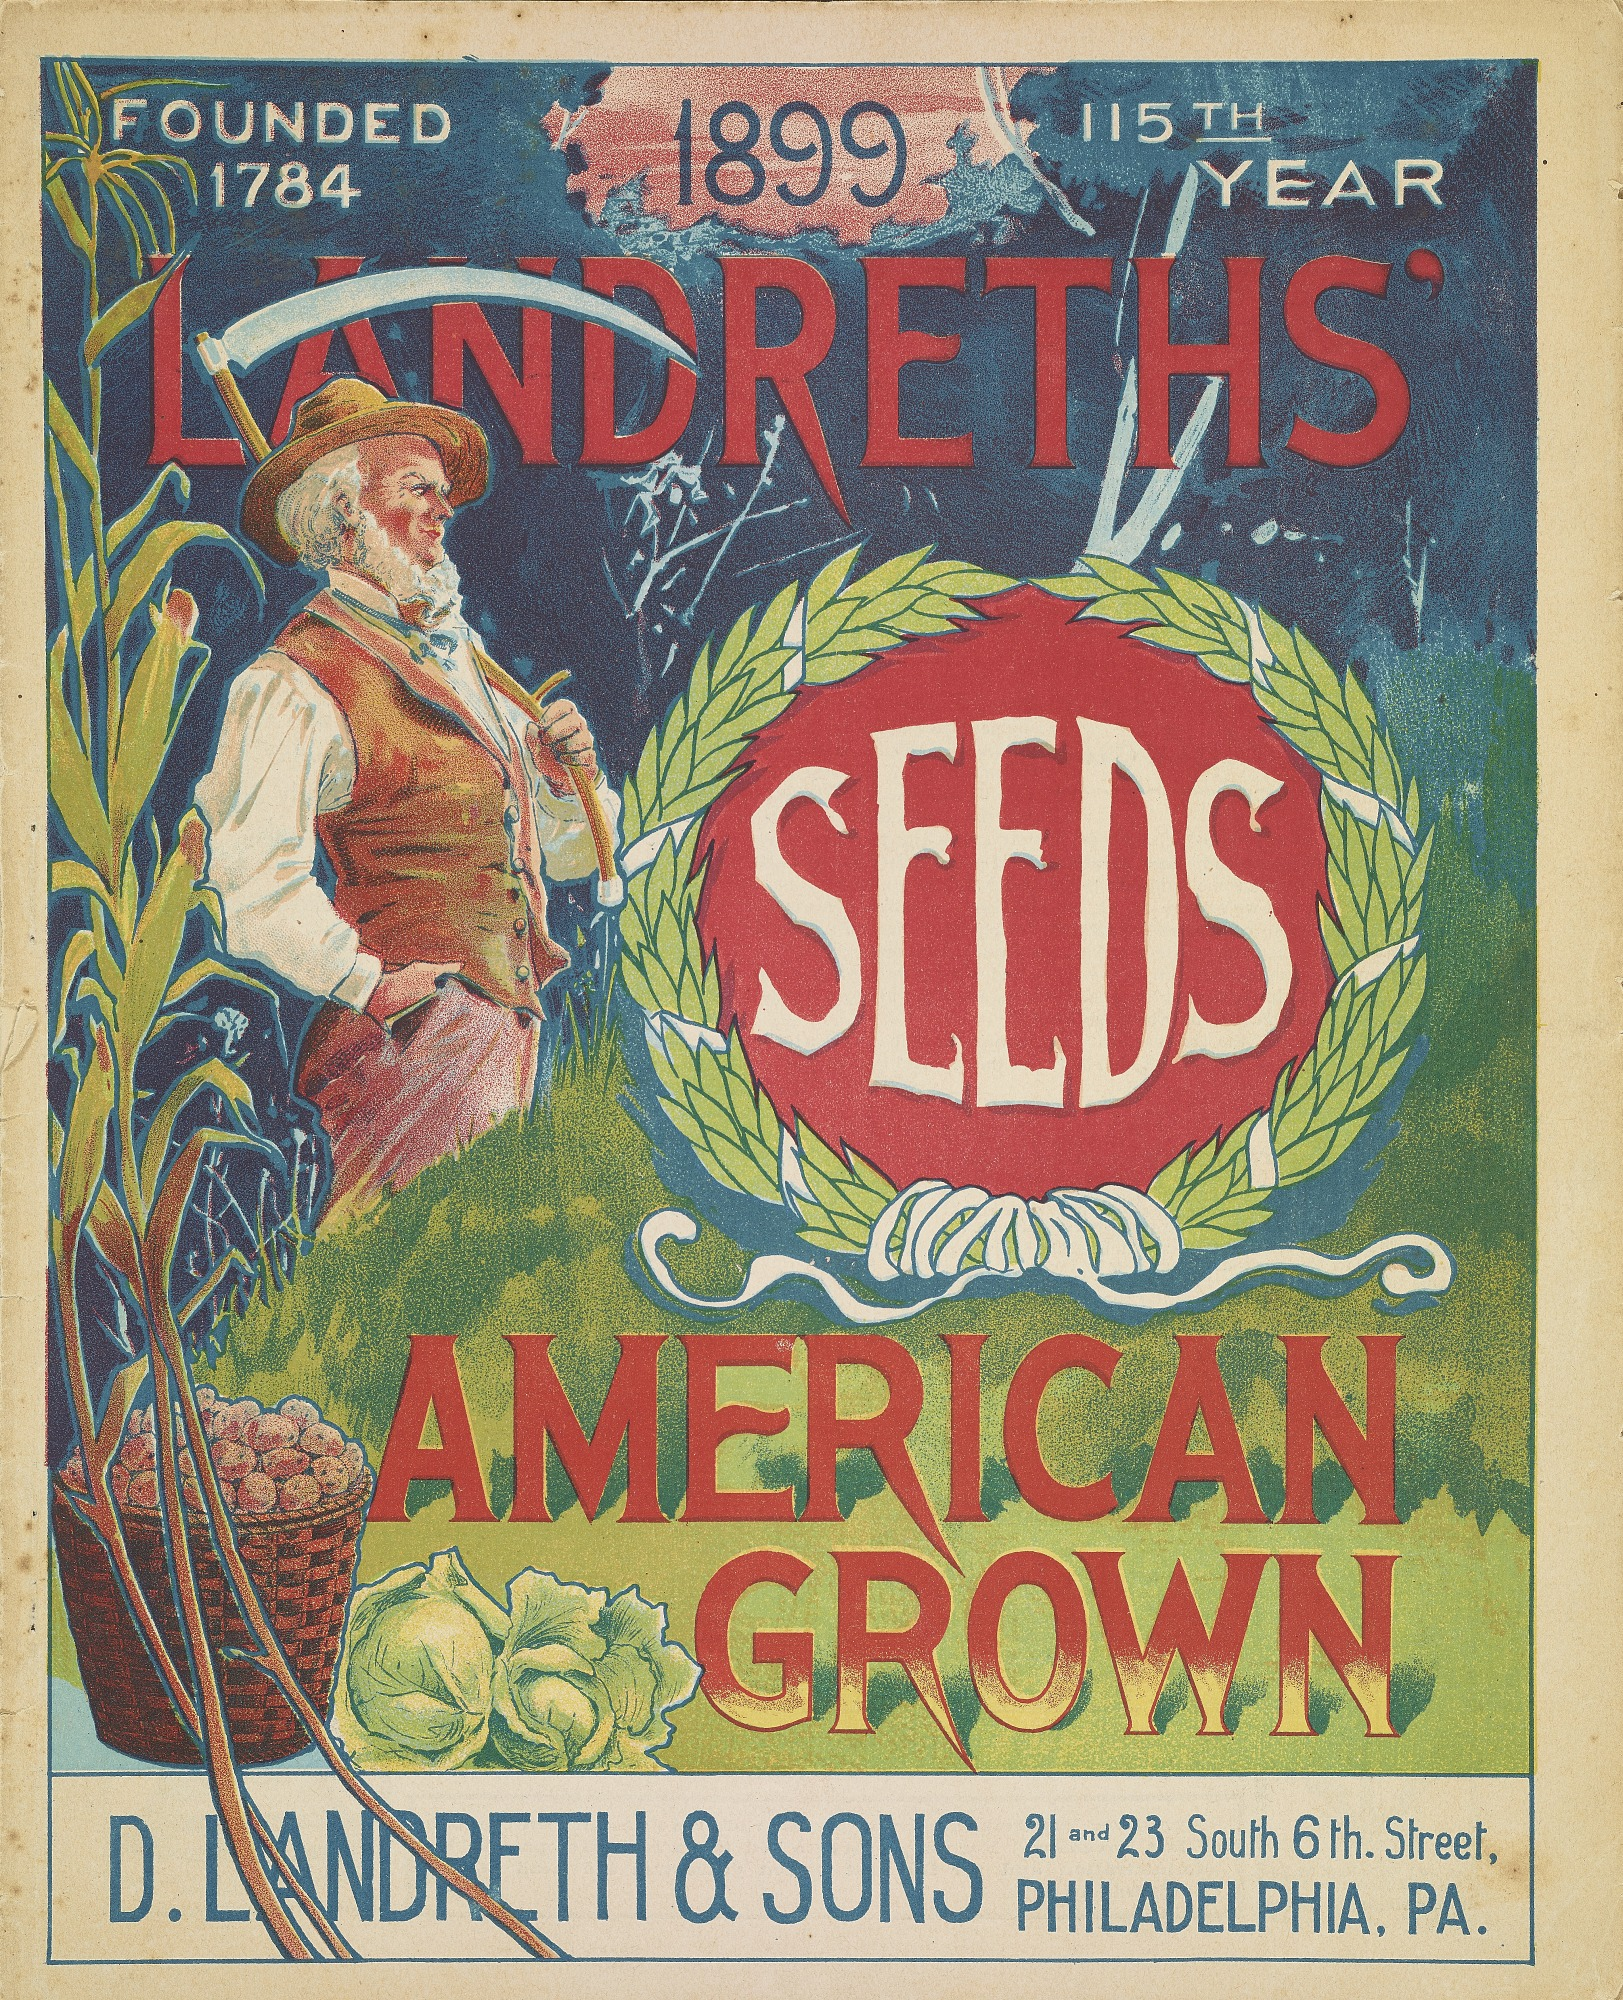 D. Landreth & Sons seed catalog, 1899.